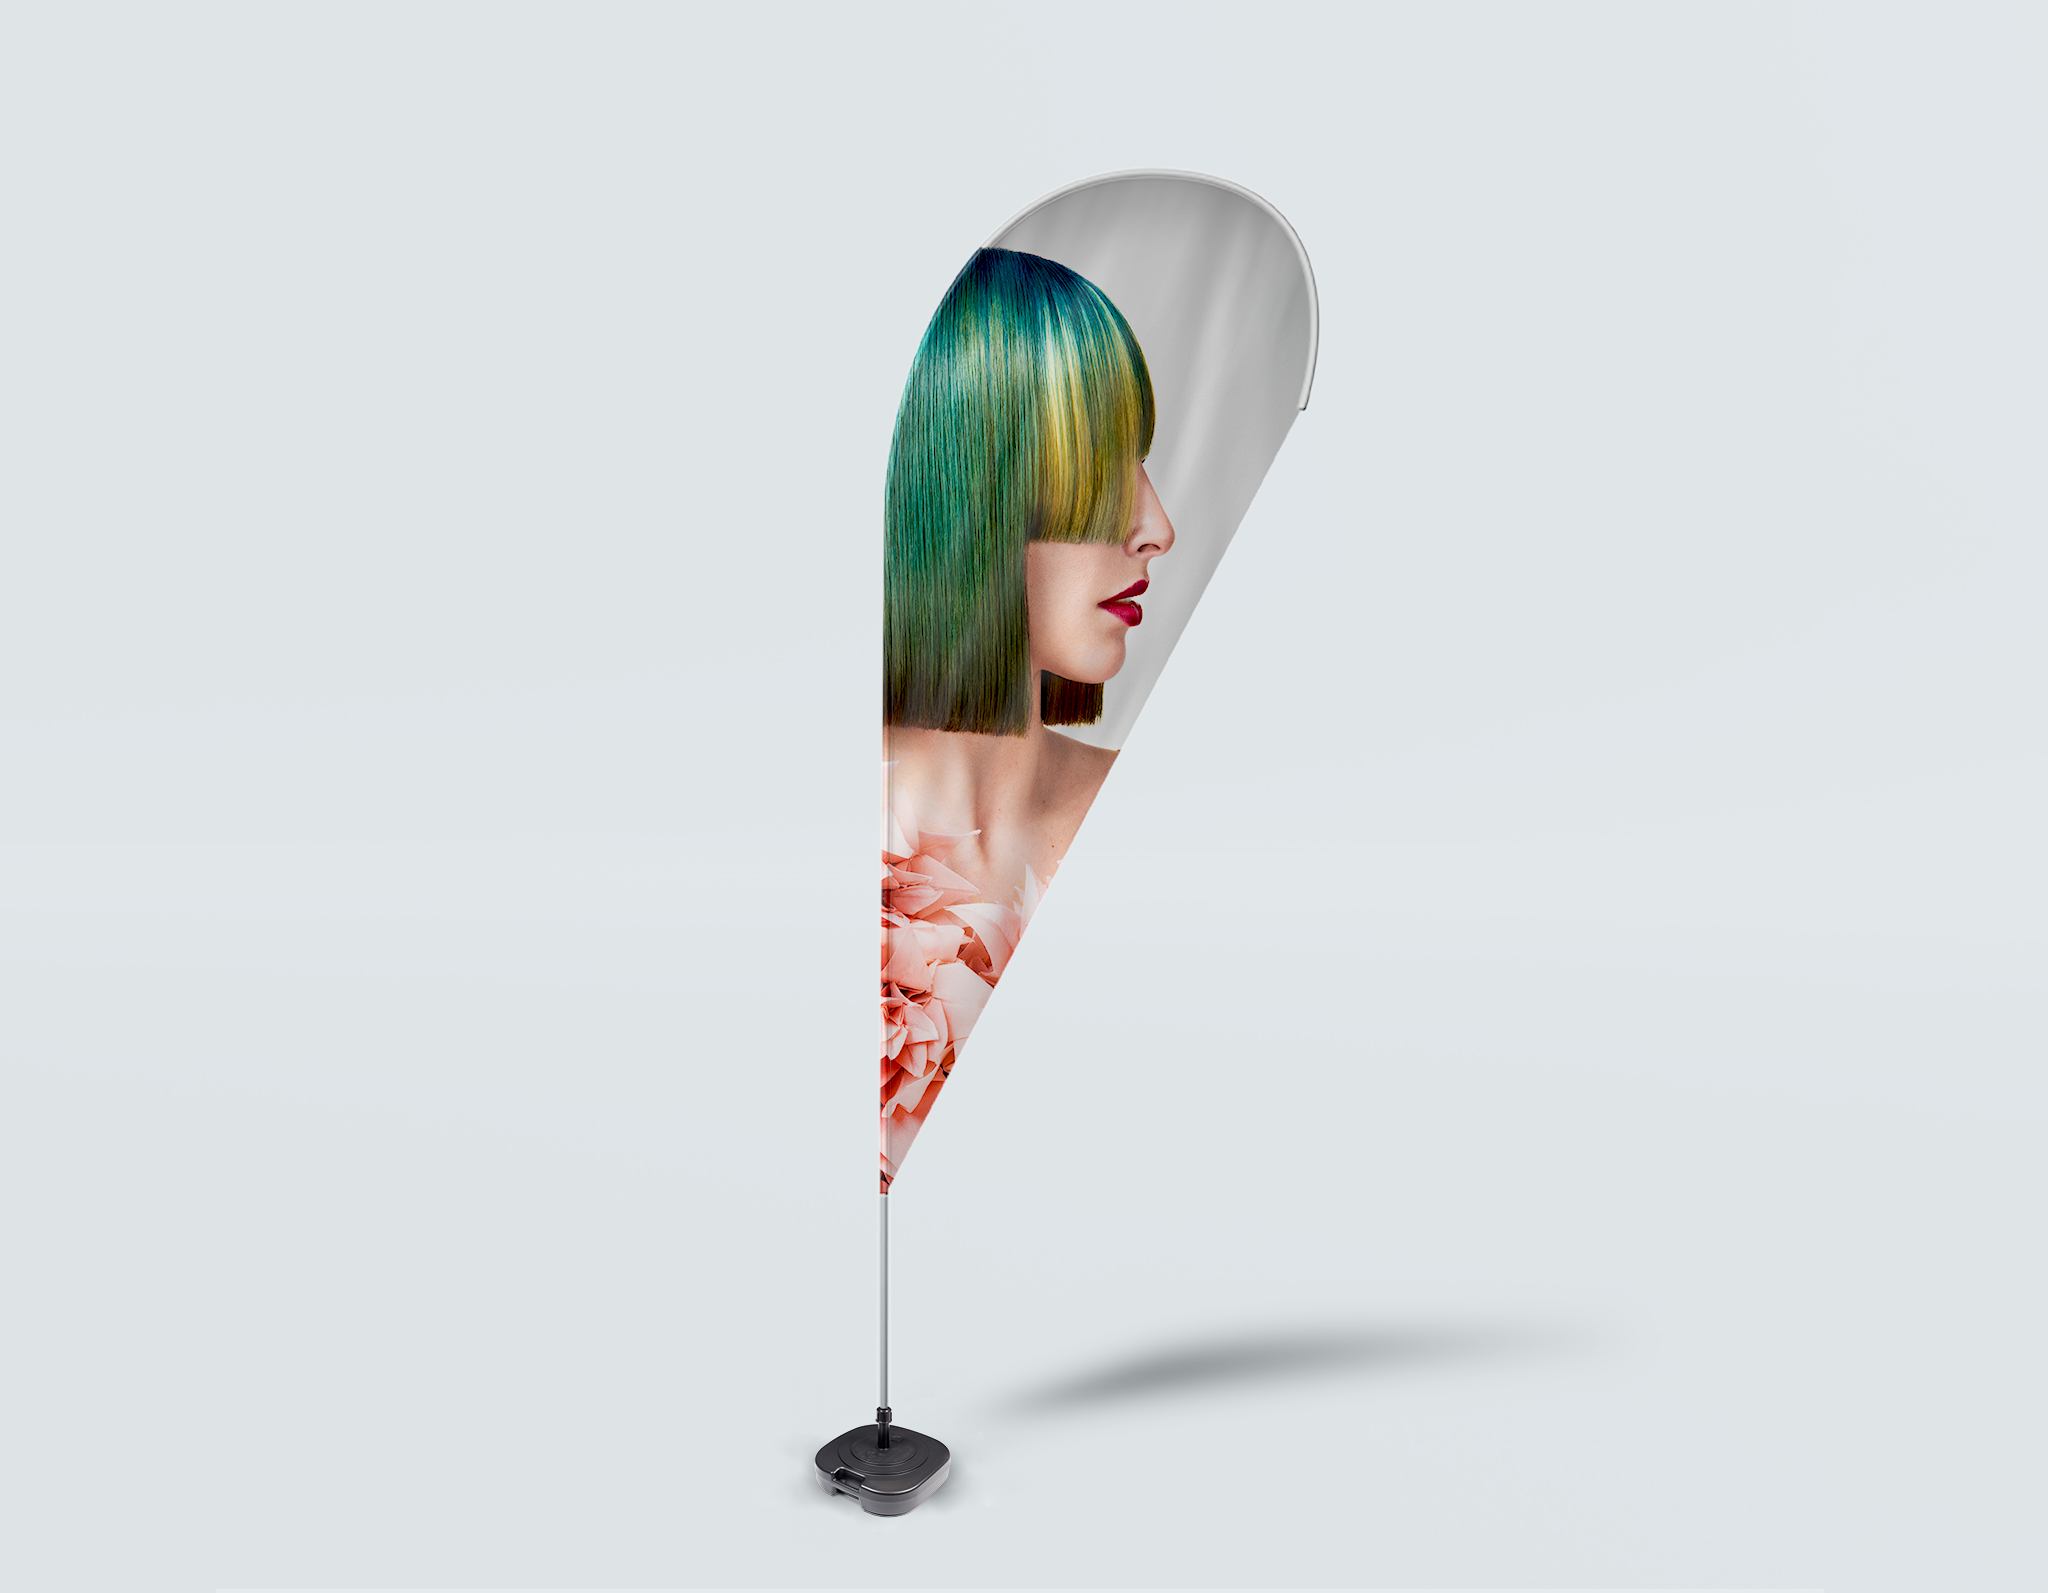 Salon Drop Flag - Woman with Green Hair in Peach Floral Textured Dress